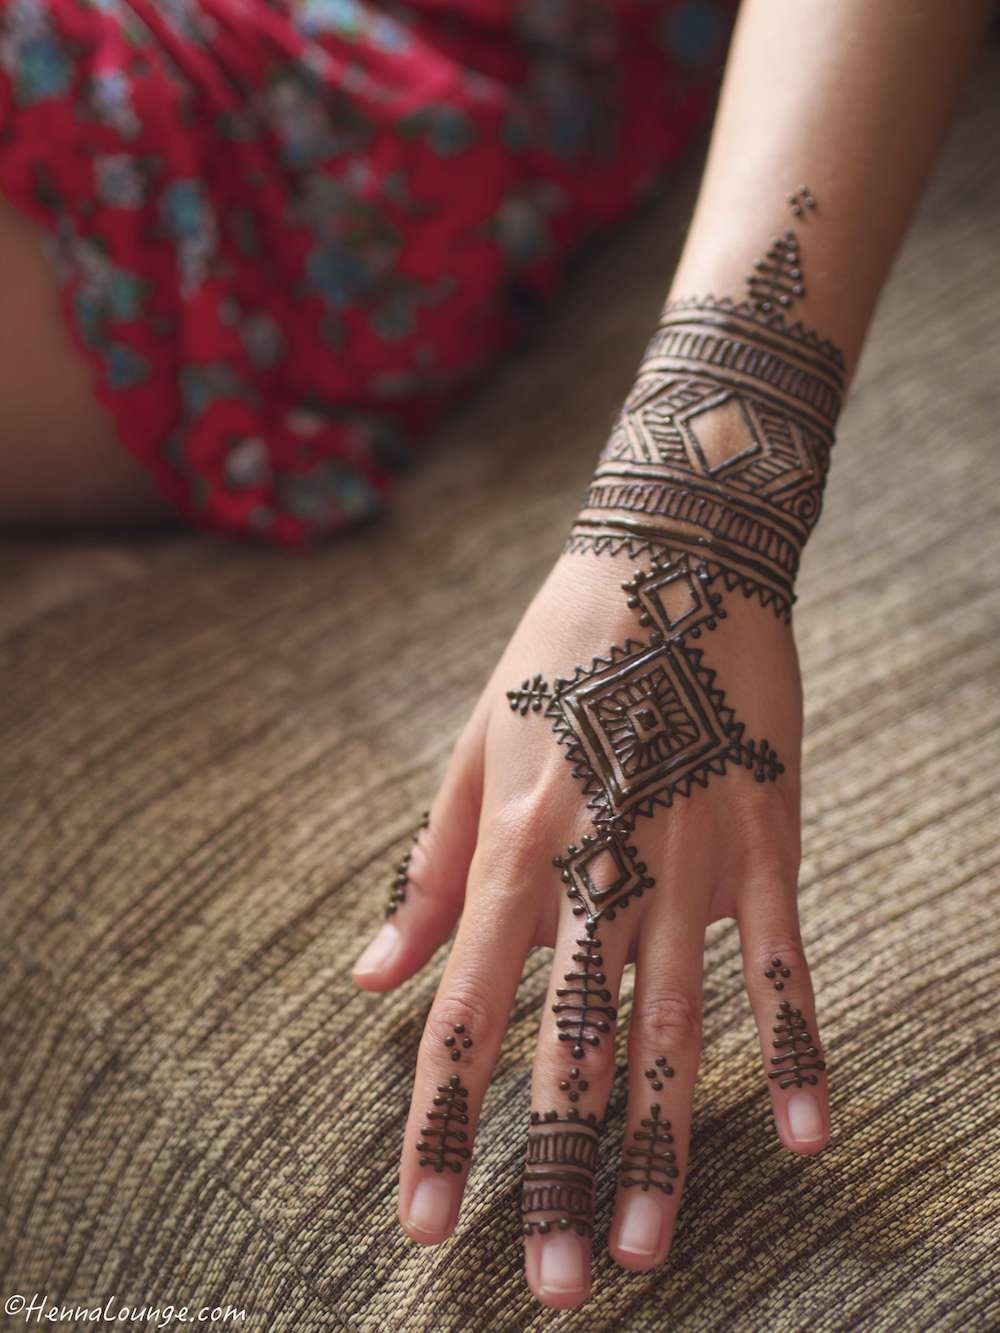 Henna lounge blog henna lounge for Henna body tattoo